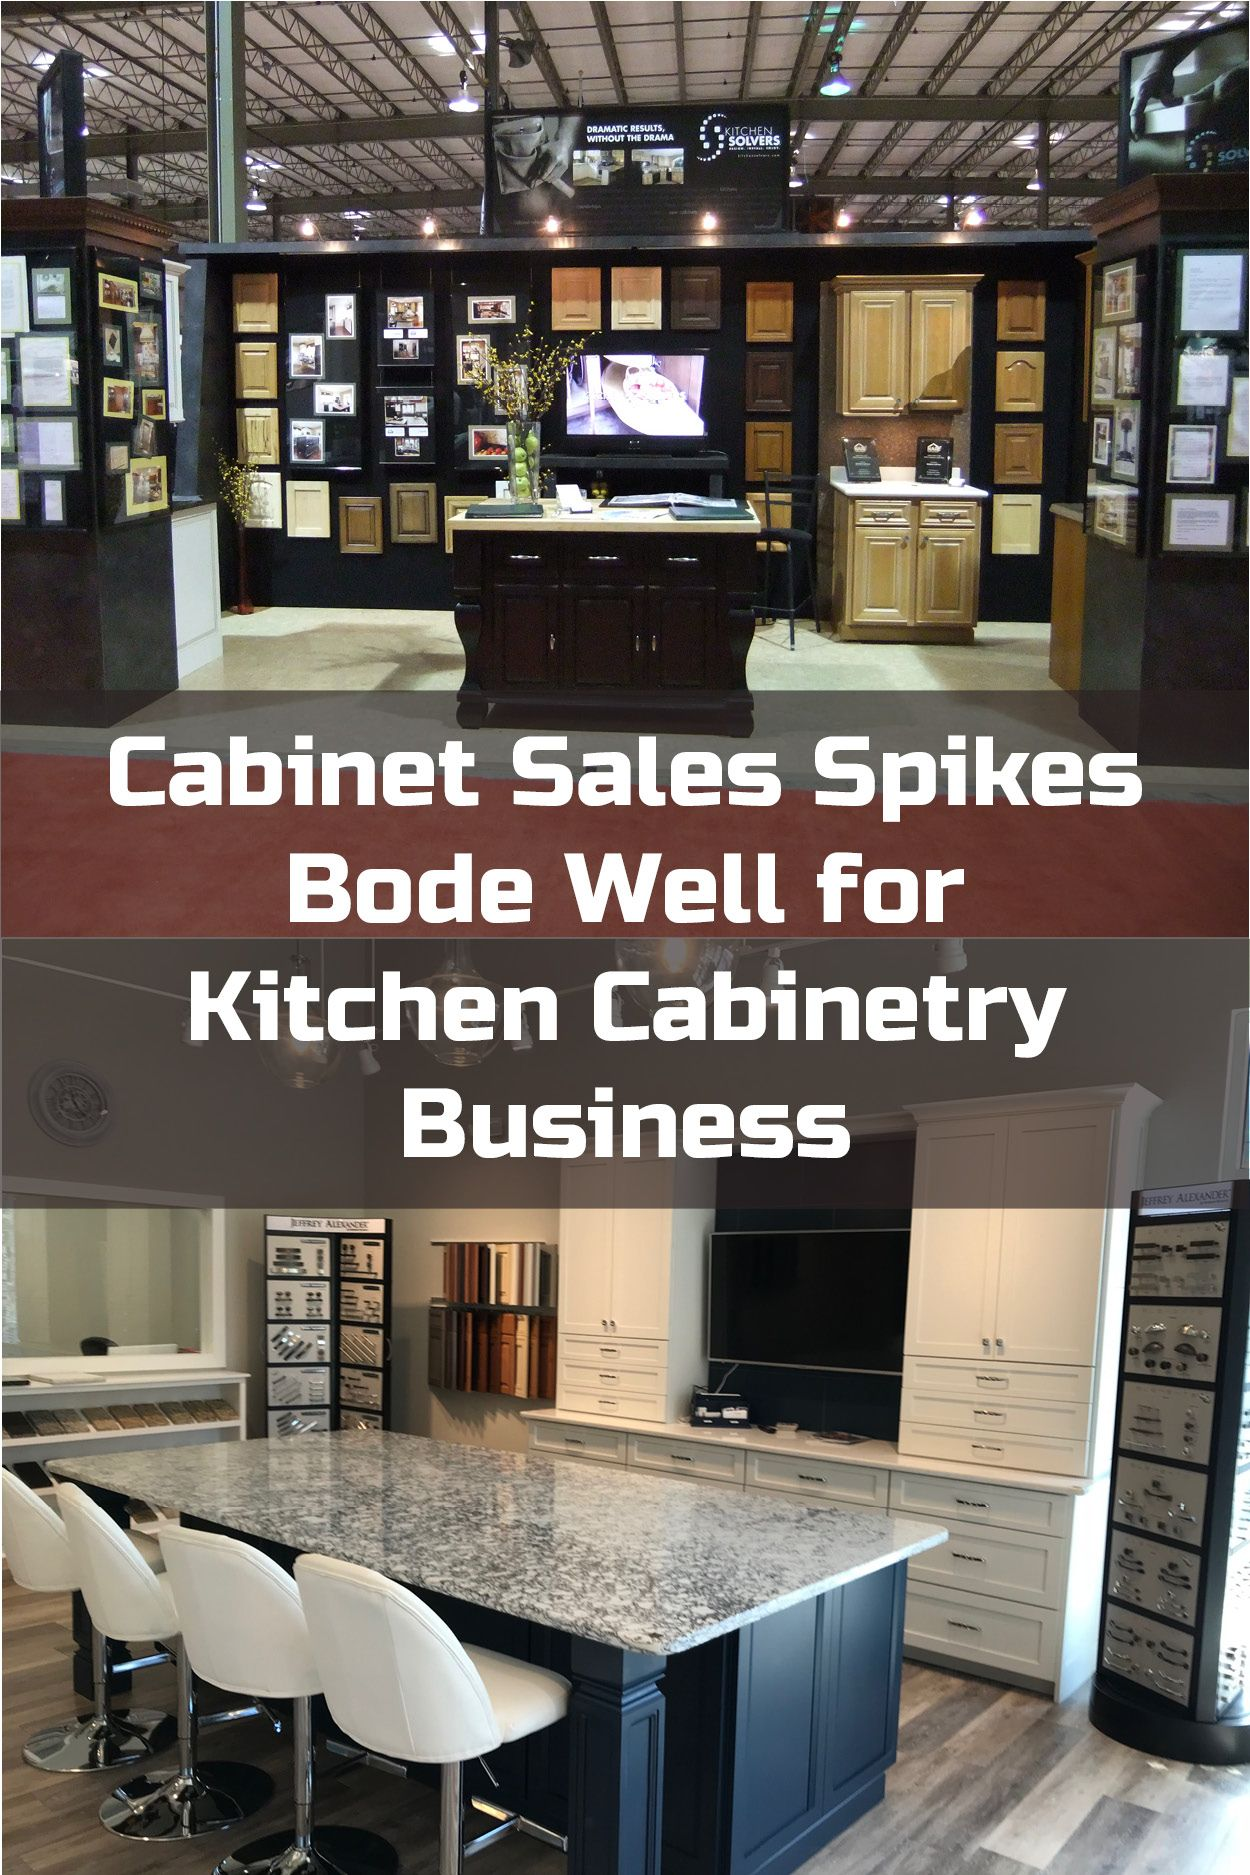 Cabinet Sales Spikes Bode Well For Kitchen Cabinetry Business Kitchen Cabinetry Kitchen Cabinet Manufacturers Cabinetry